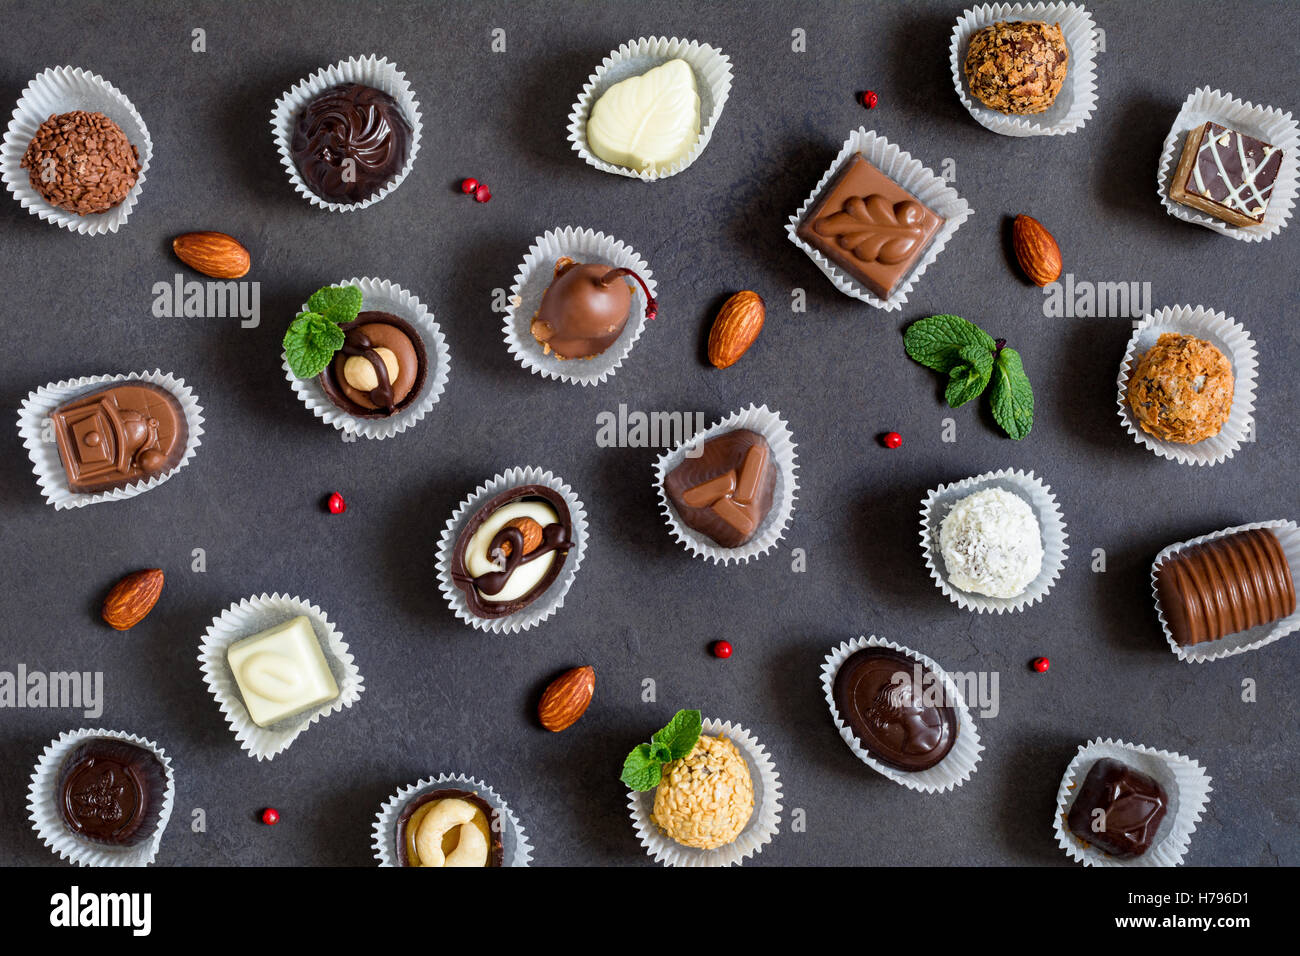 Chocolats motif sur fond sombre Photo Stock